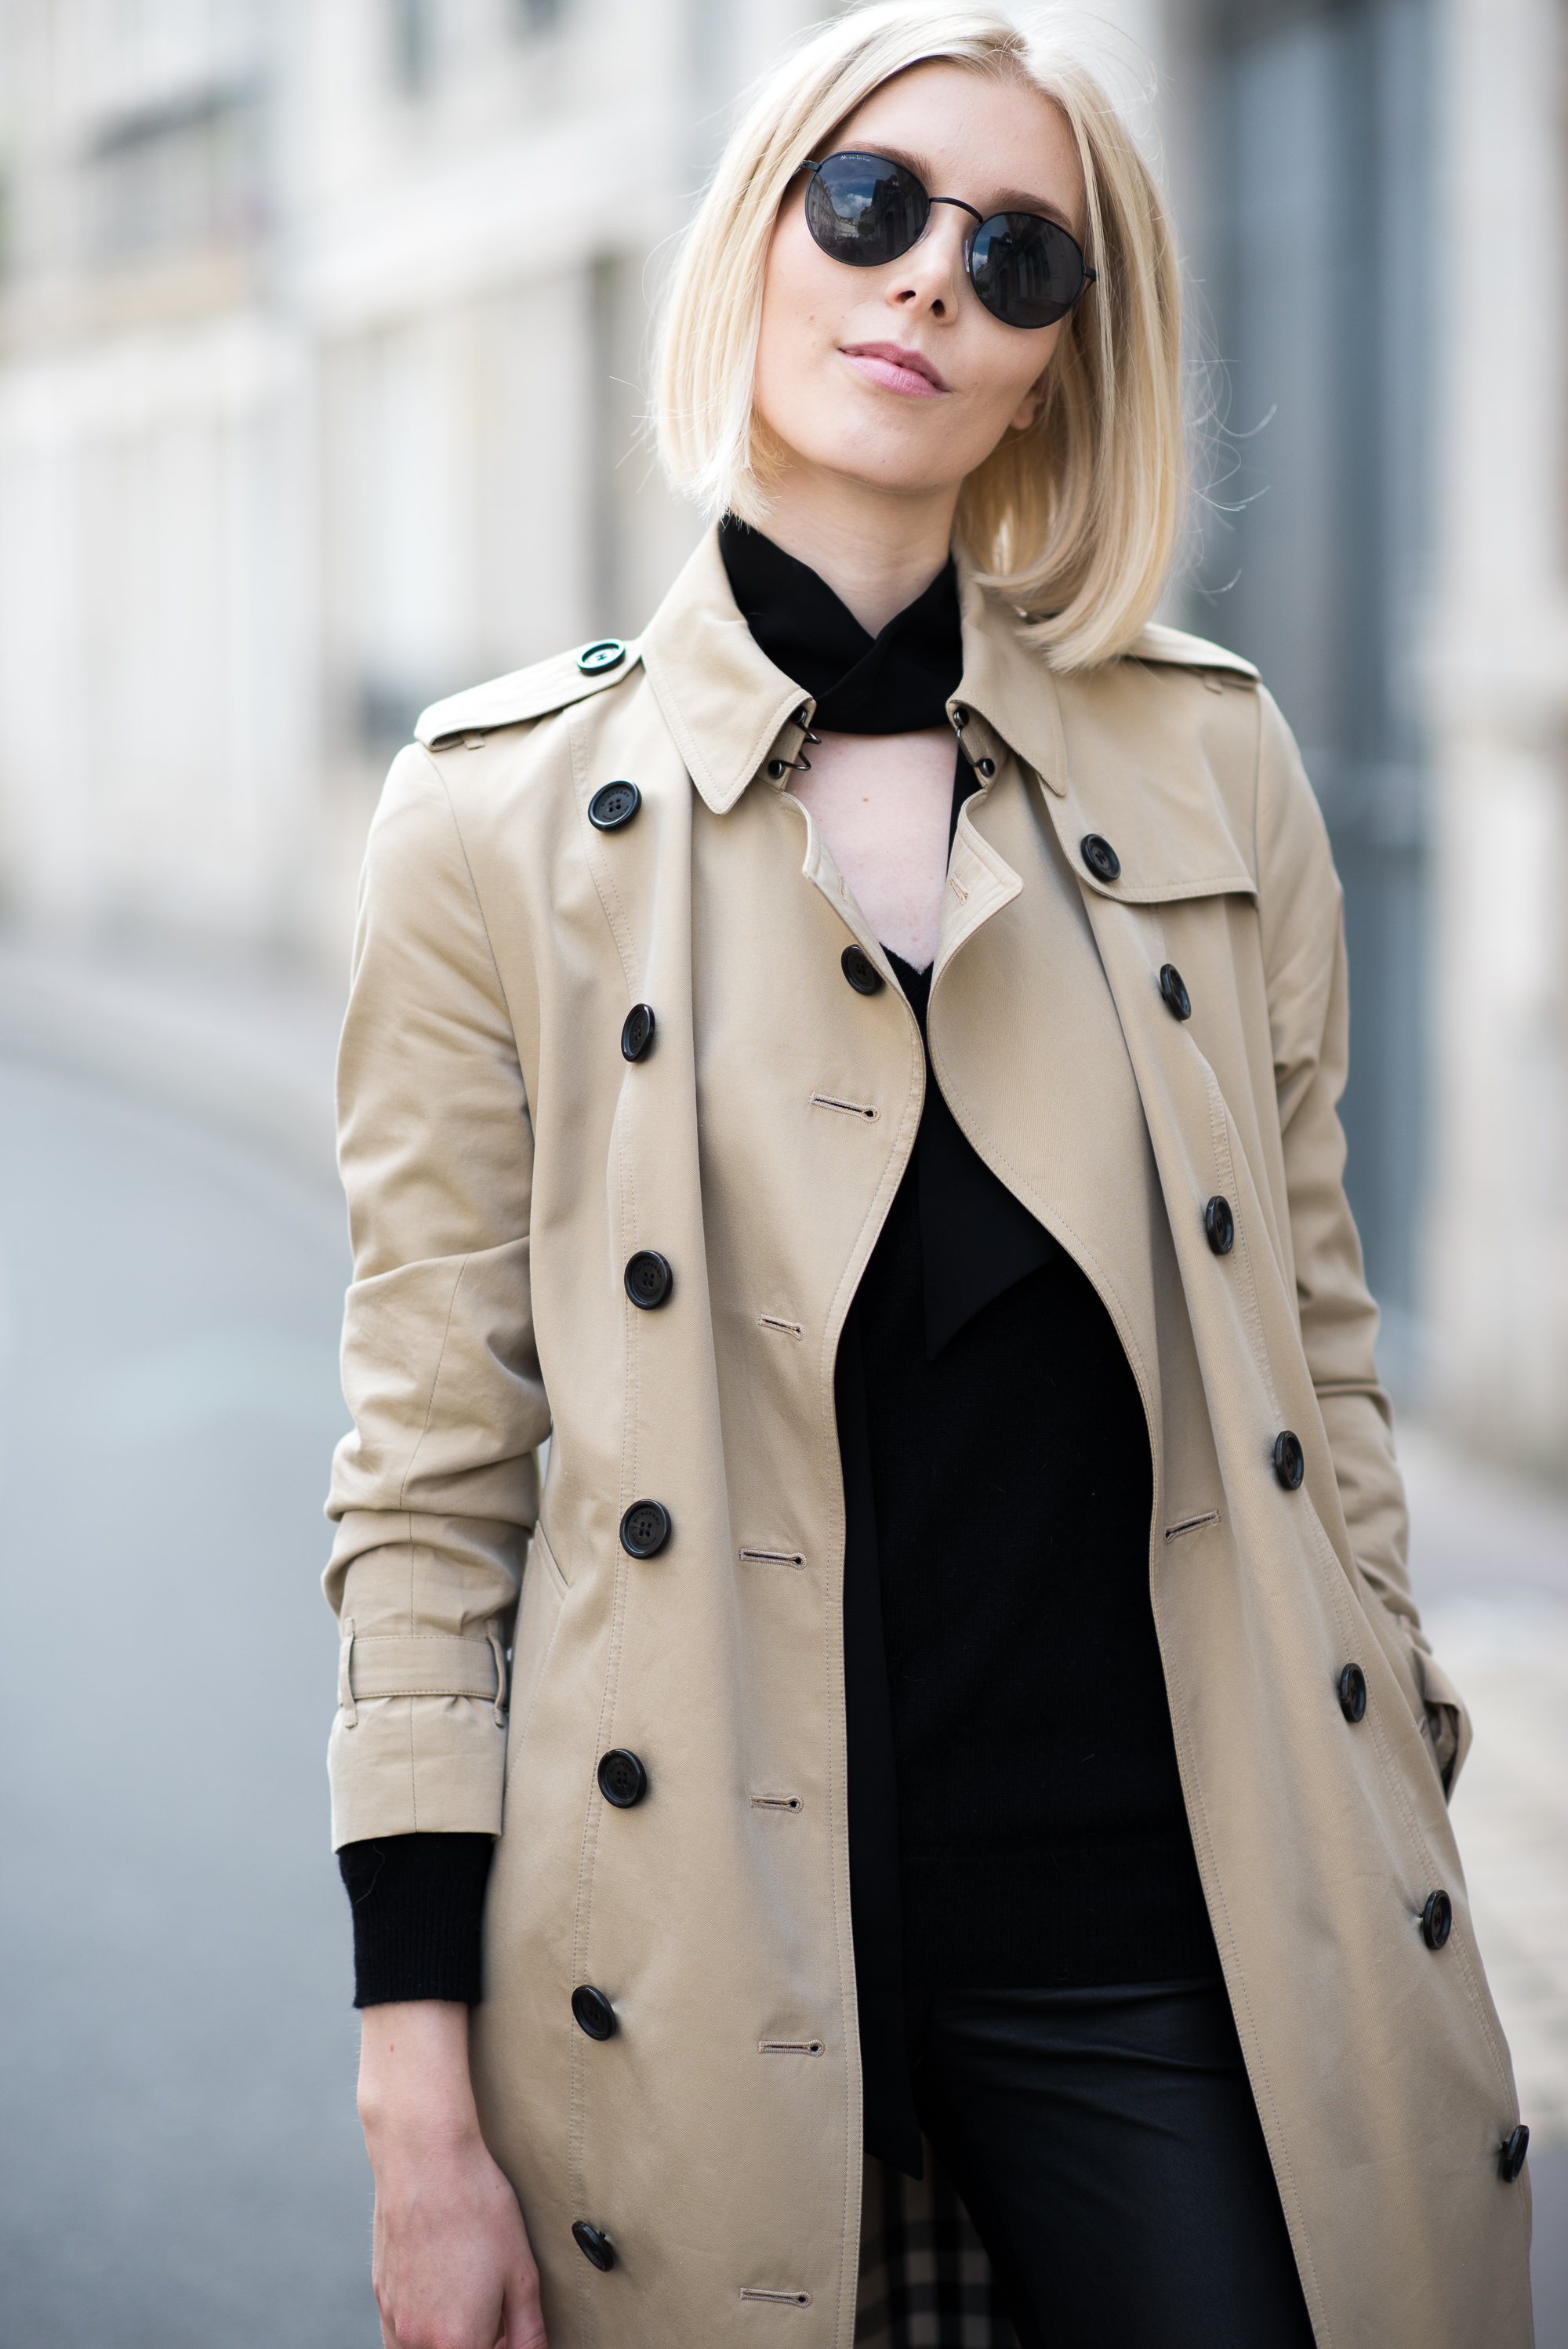 burberry-trench-outfit-4